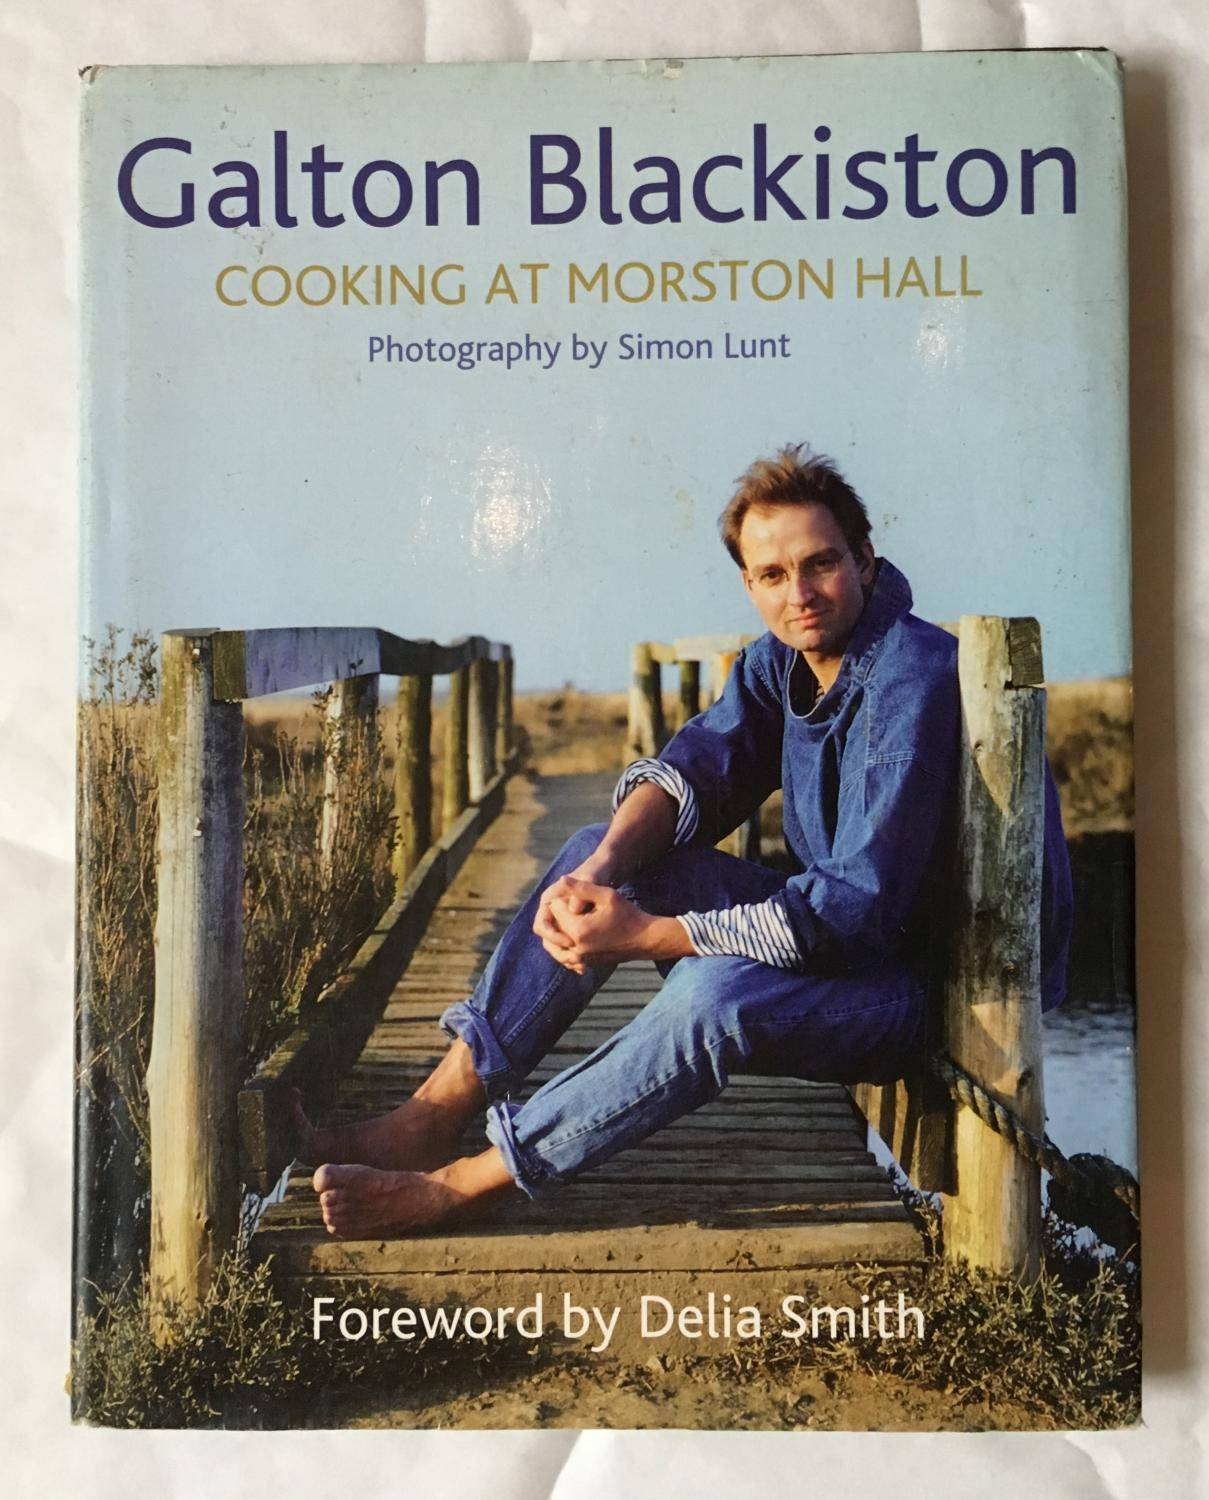 Cooking at Morston Hall SIGNED COPY BLACKISTON Galton [Very Good] [Hardcover]